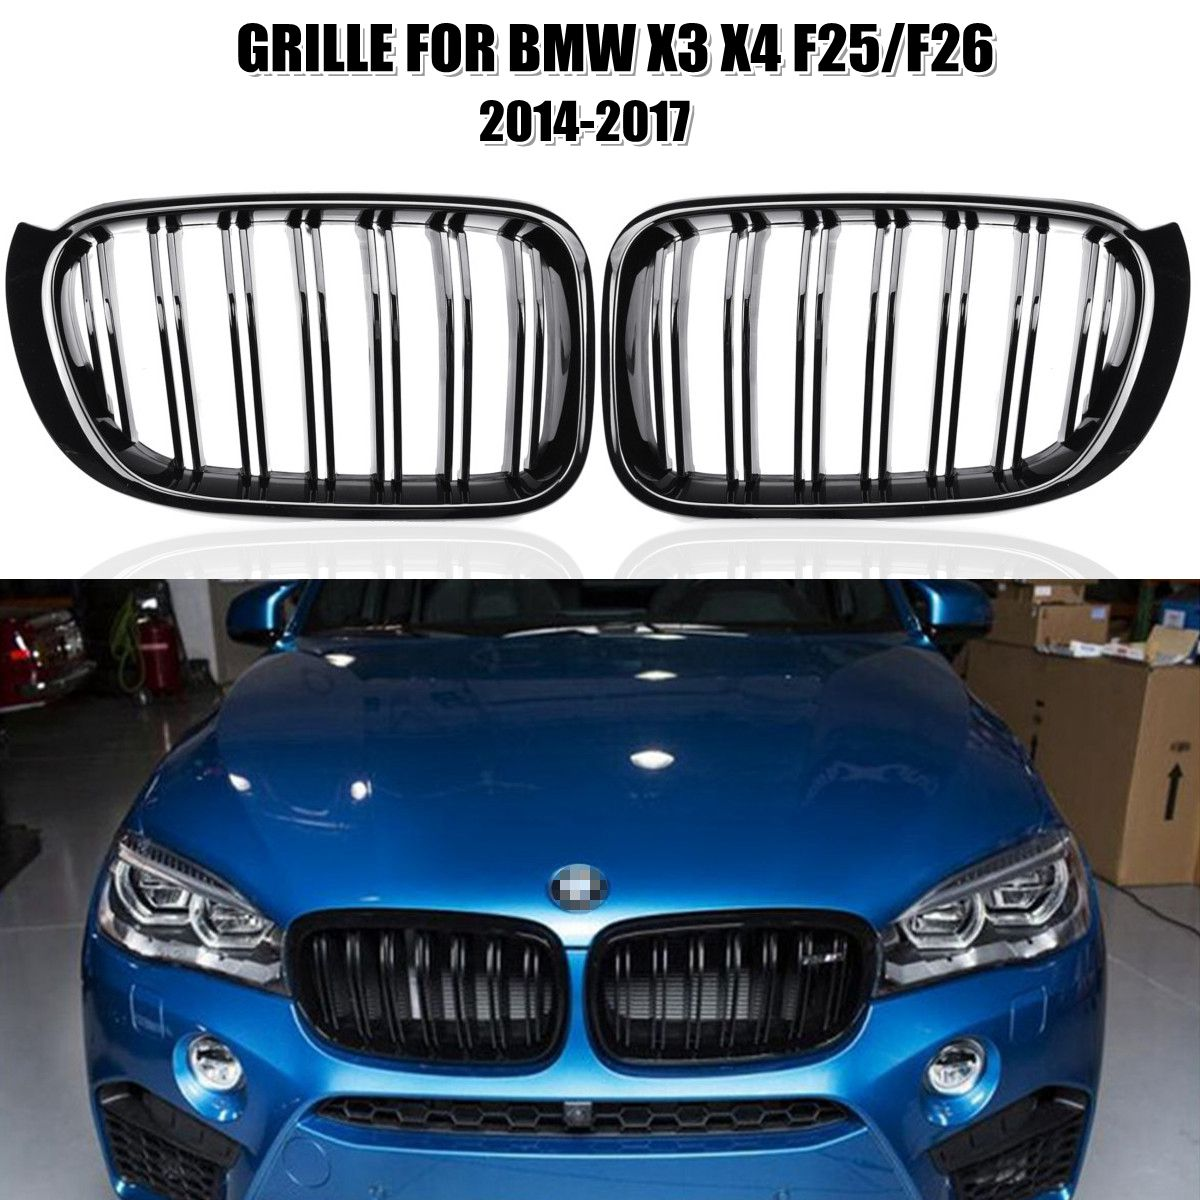 2Pcs M Style Car Front Kidney Grill Grille Gloss Black for BMW X3 X4 F25/F26 2014 2015 2016 2017 x3m x4m style durable abs front hood grill for 2014 2015 2016 bmw x4 f26